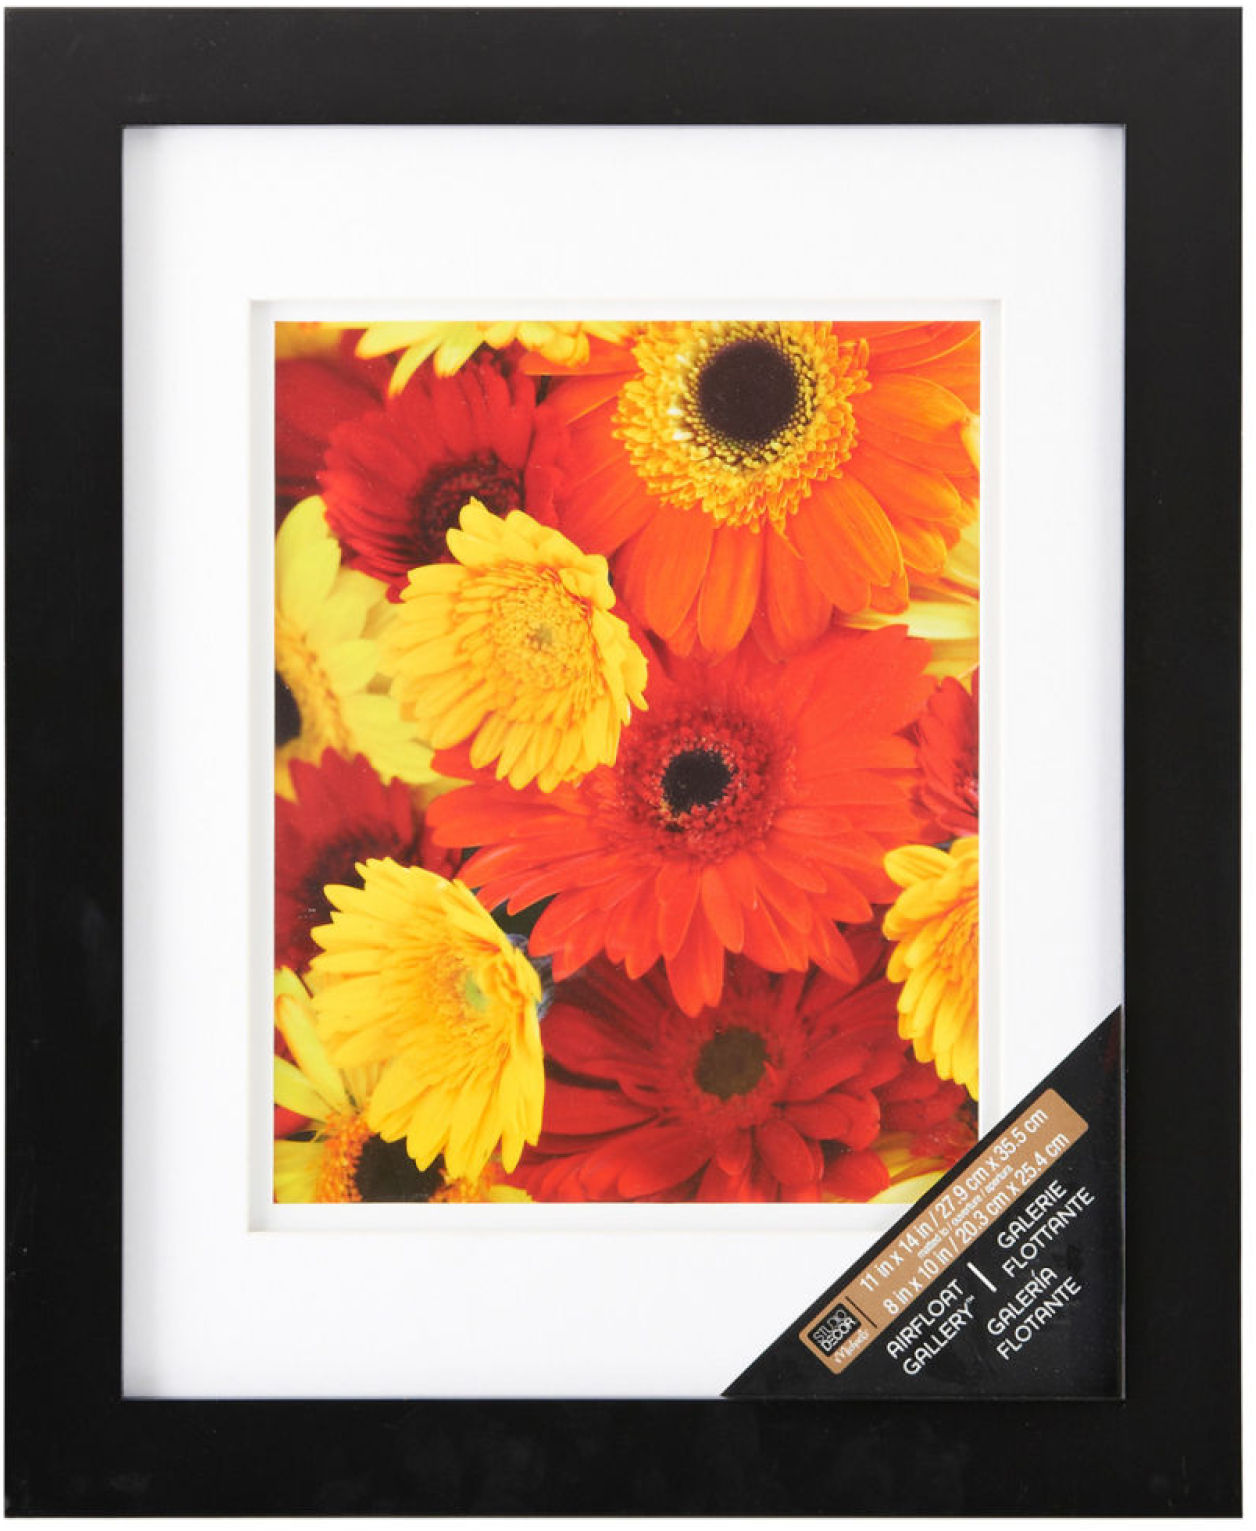 Studio Décor® Airfloat Gallery™ Wall Frame with Double White Mat, Black